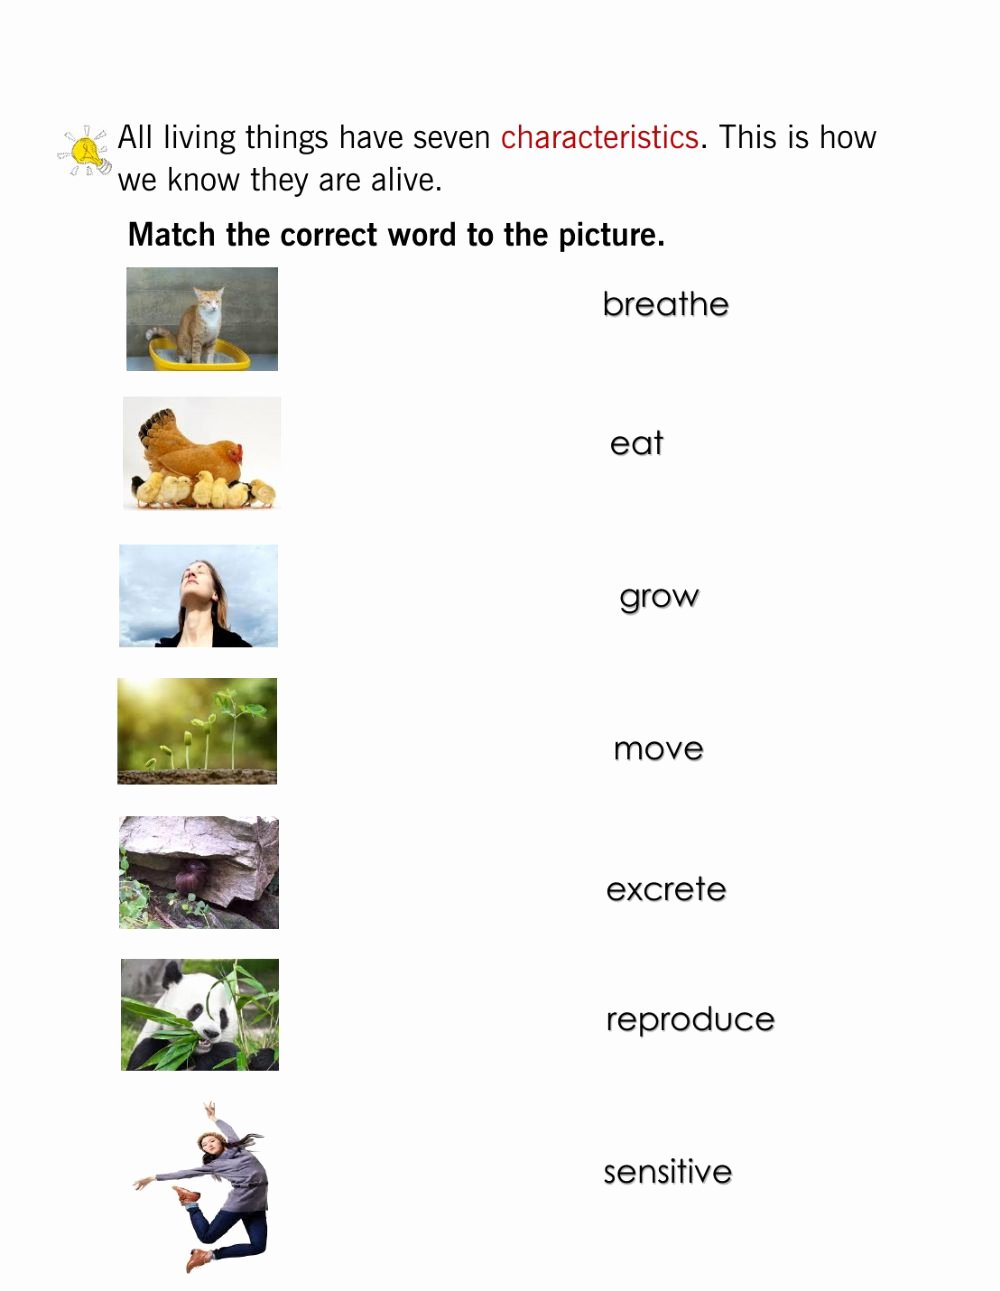 Characteristics Of Living Things Worksheet New Characteristics Of Living Things Interactive Worksheet